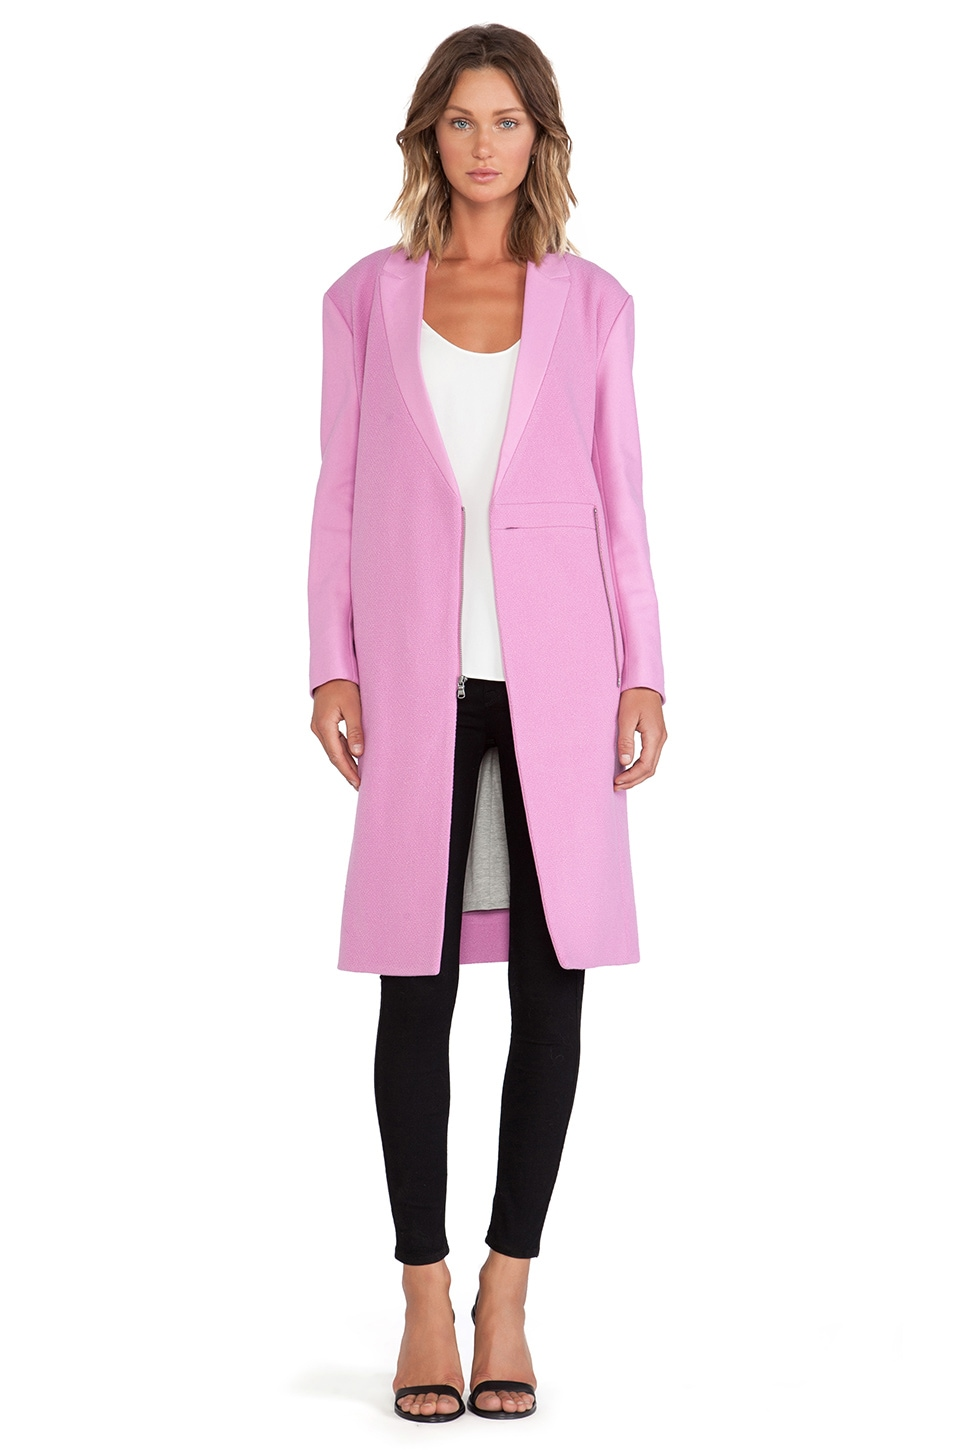 Tibi Boucle Long Coat in Pink | REVOLVE